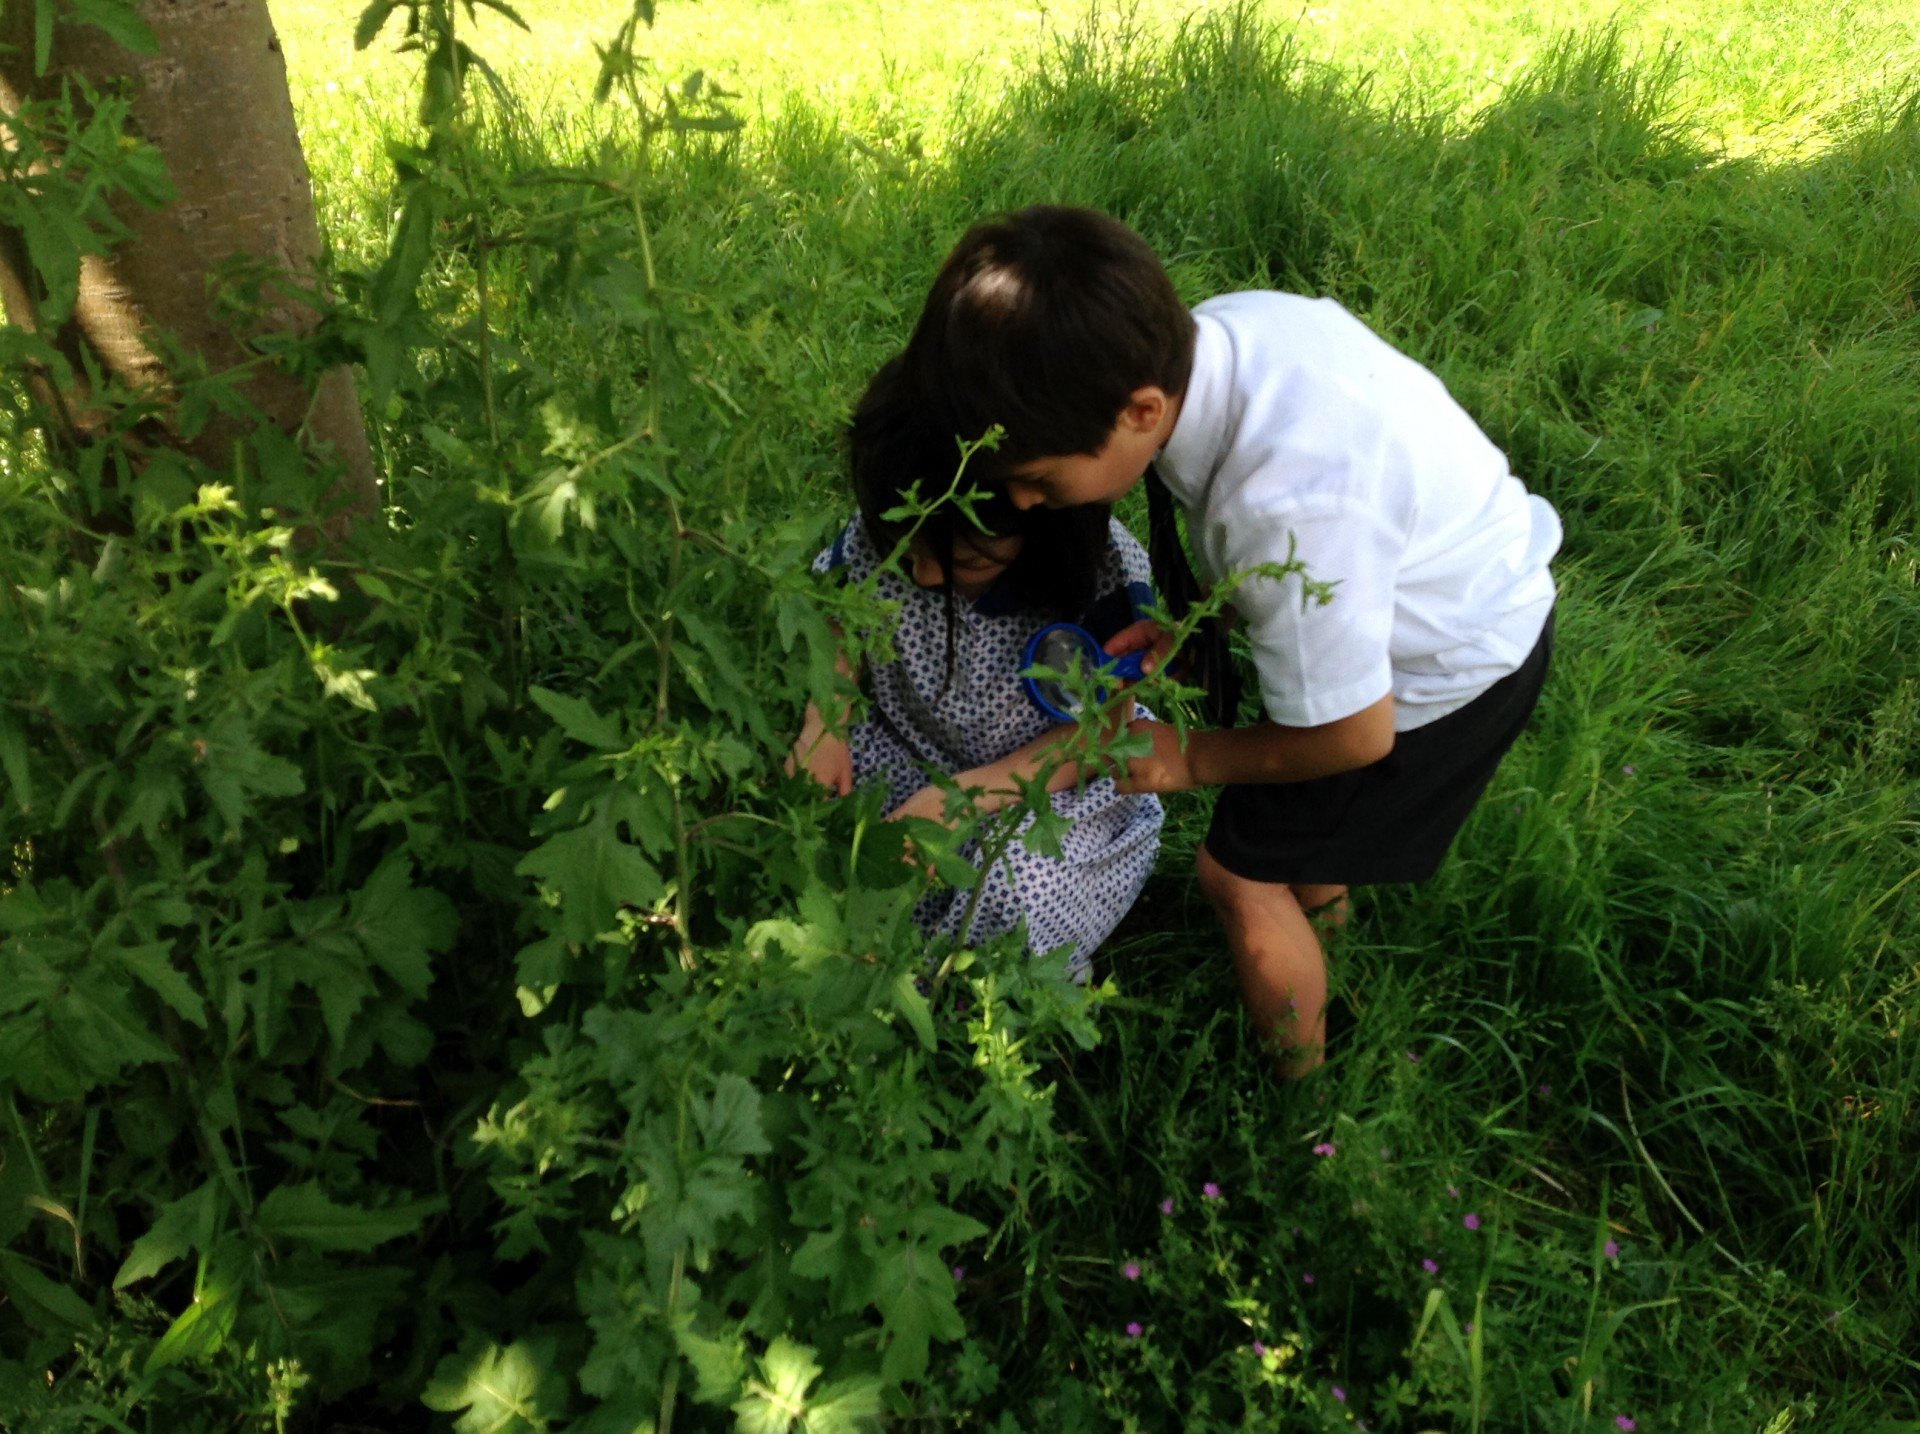 Reception hunt for minibeasts with the RSPB!